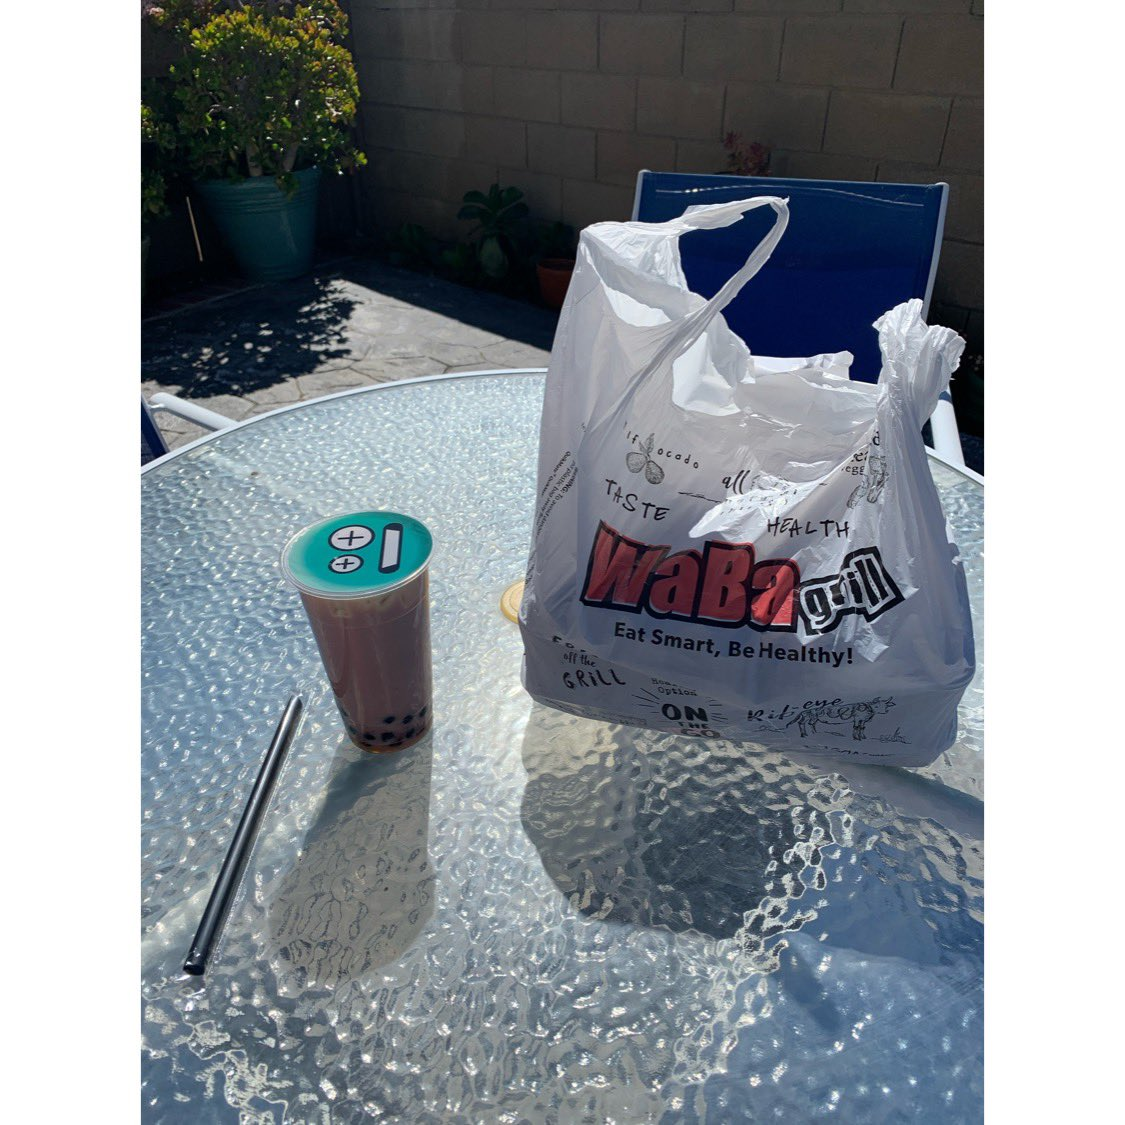 Lunch by the pool ❤️☀️🌴 @wabagrill #bobateaandyogurthouse #food #yummy #sofl #socal #friday #vibes #pool #health #wellness #lifestyle #eat #drink #wabagrill #familymeal #grilledchicken #rice #vegetables #strawberry #boba